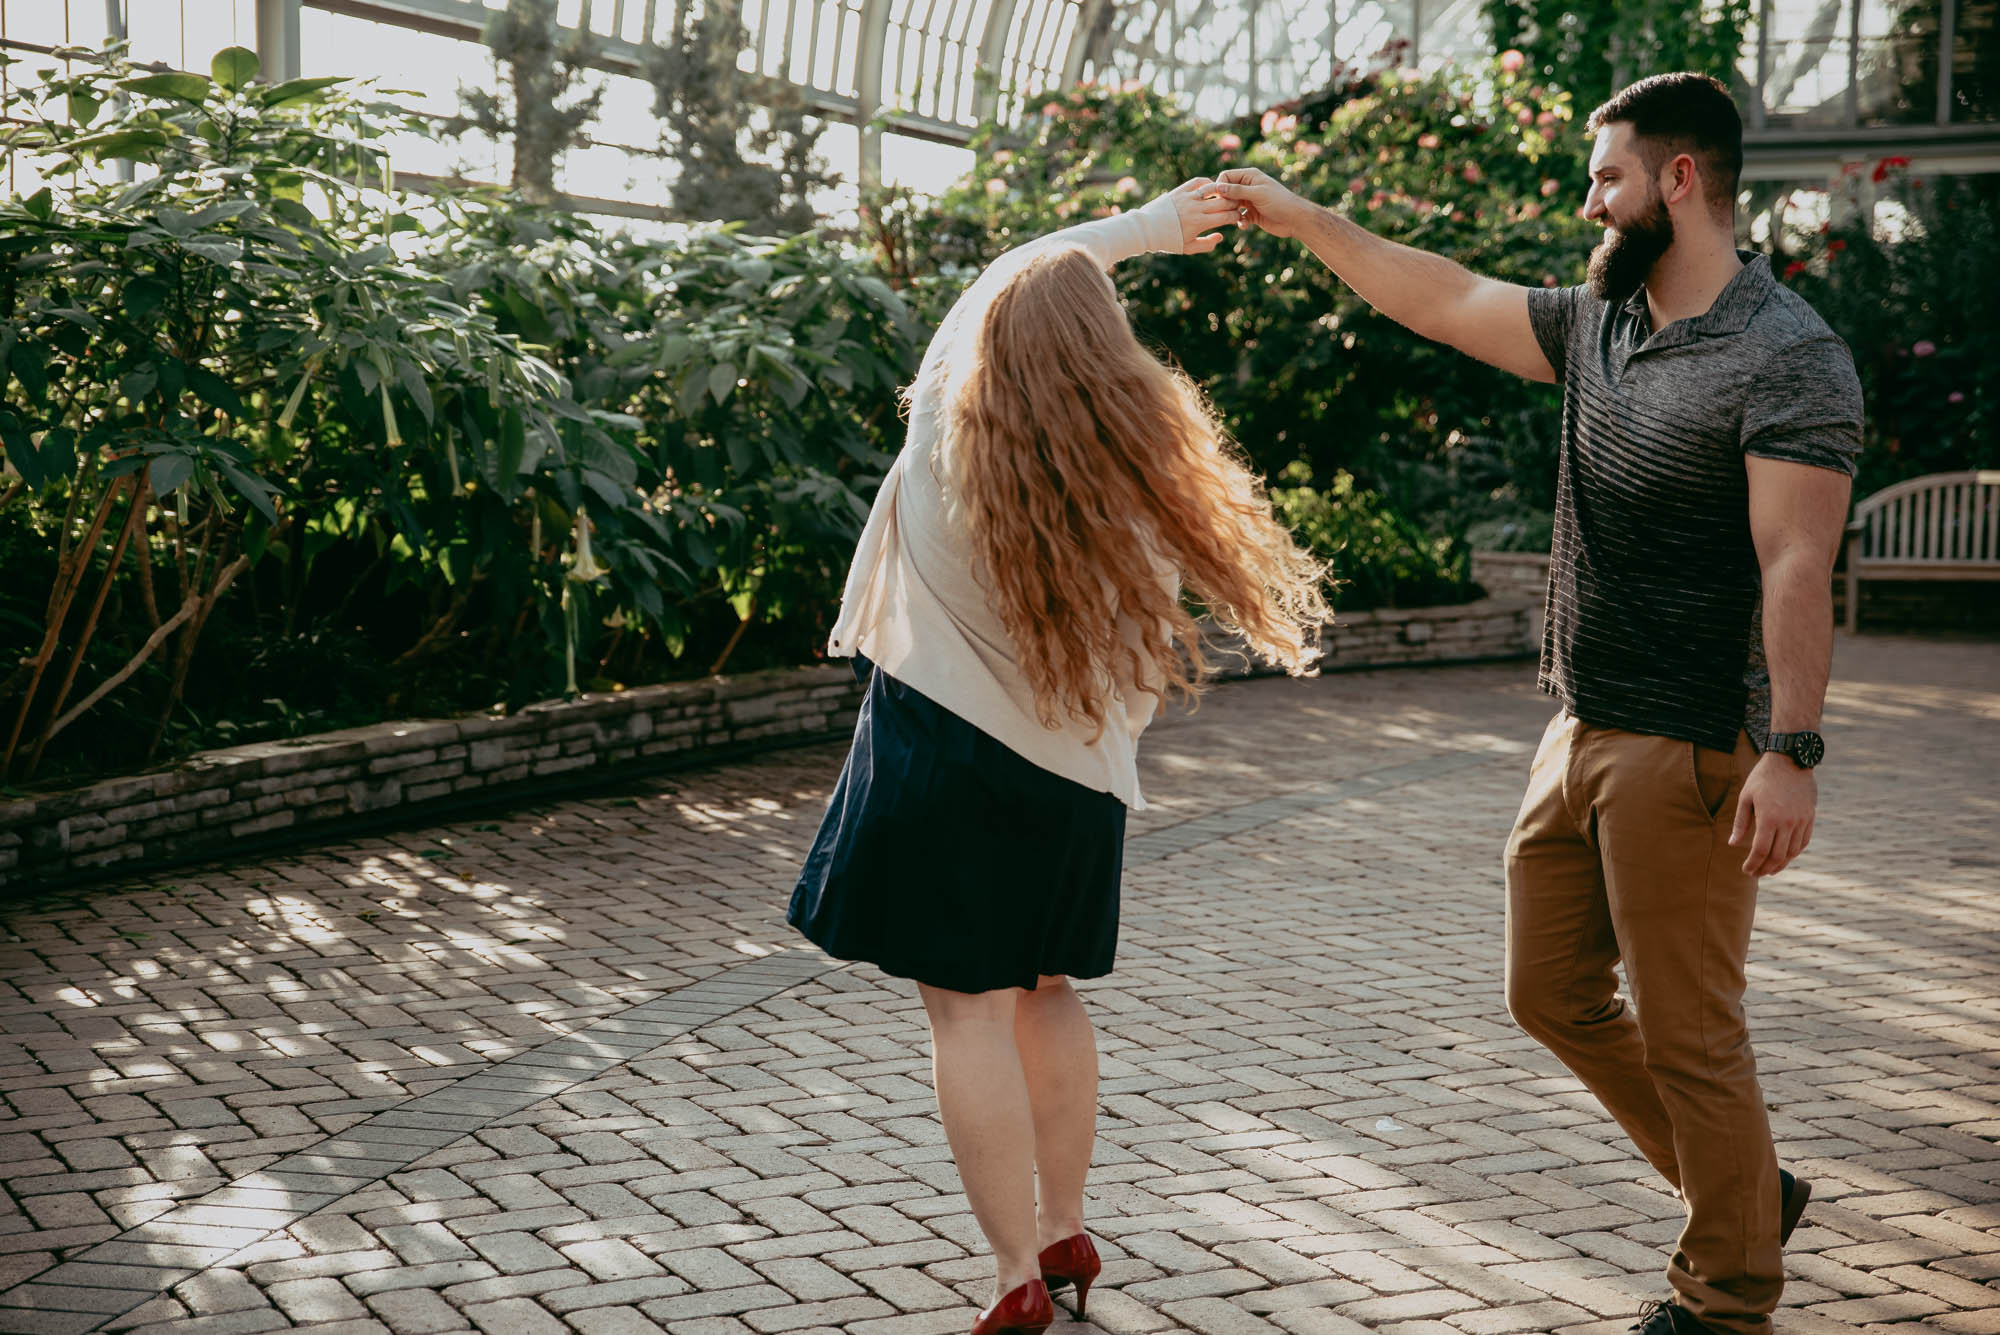 garfield-conservatory-engagement-photos-chicago-il-photographers-26.jpg